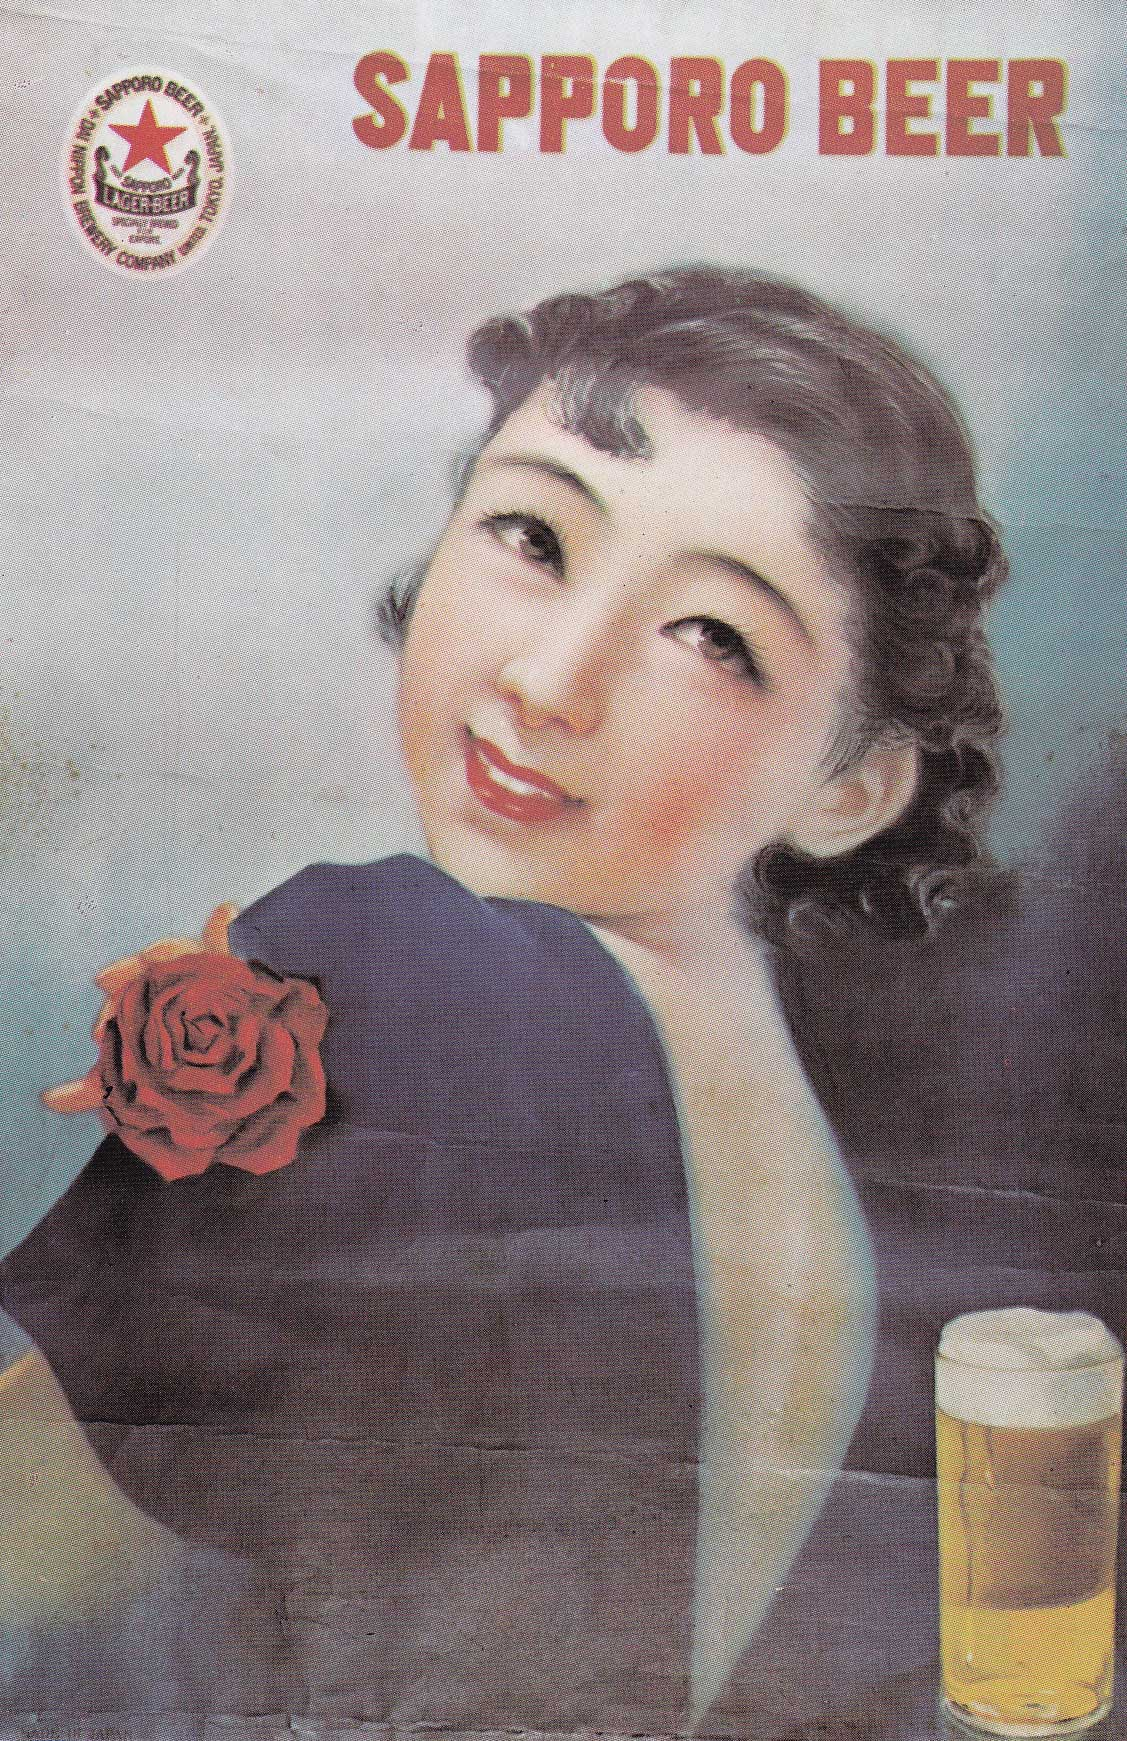 Thanks for vintage japanese beer ads